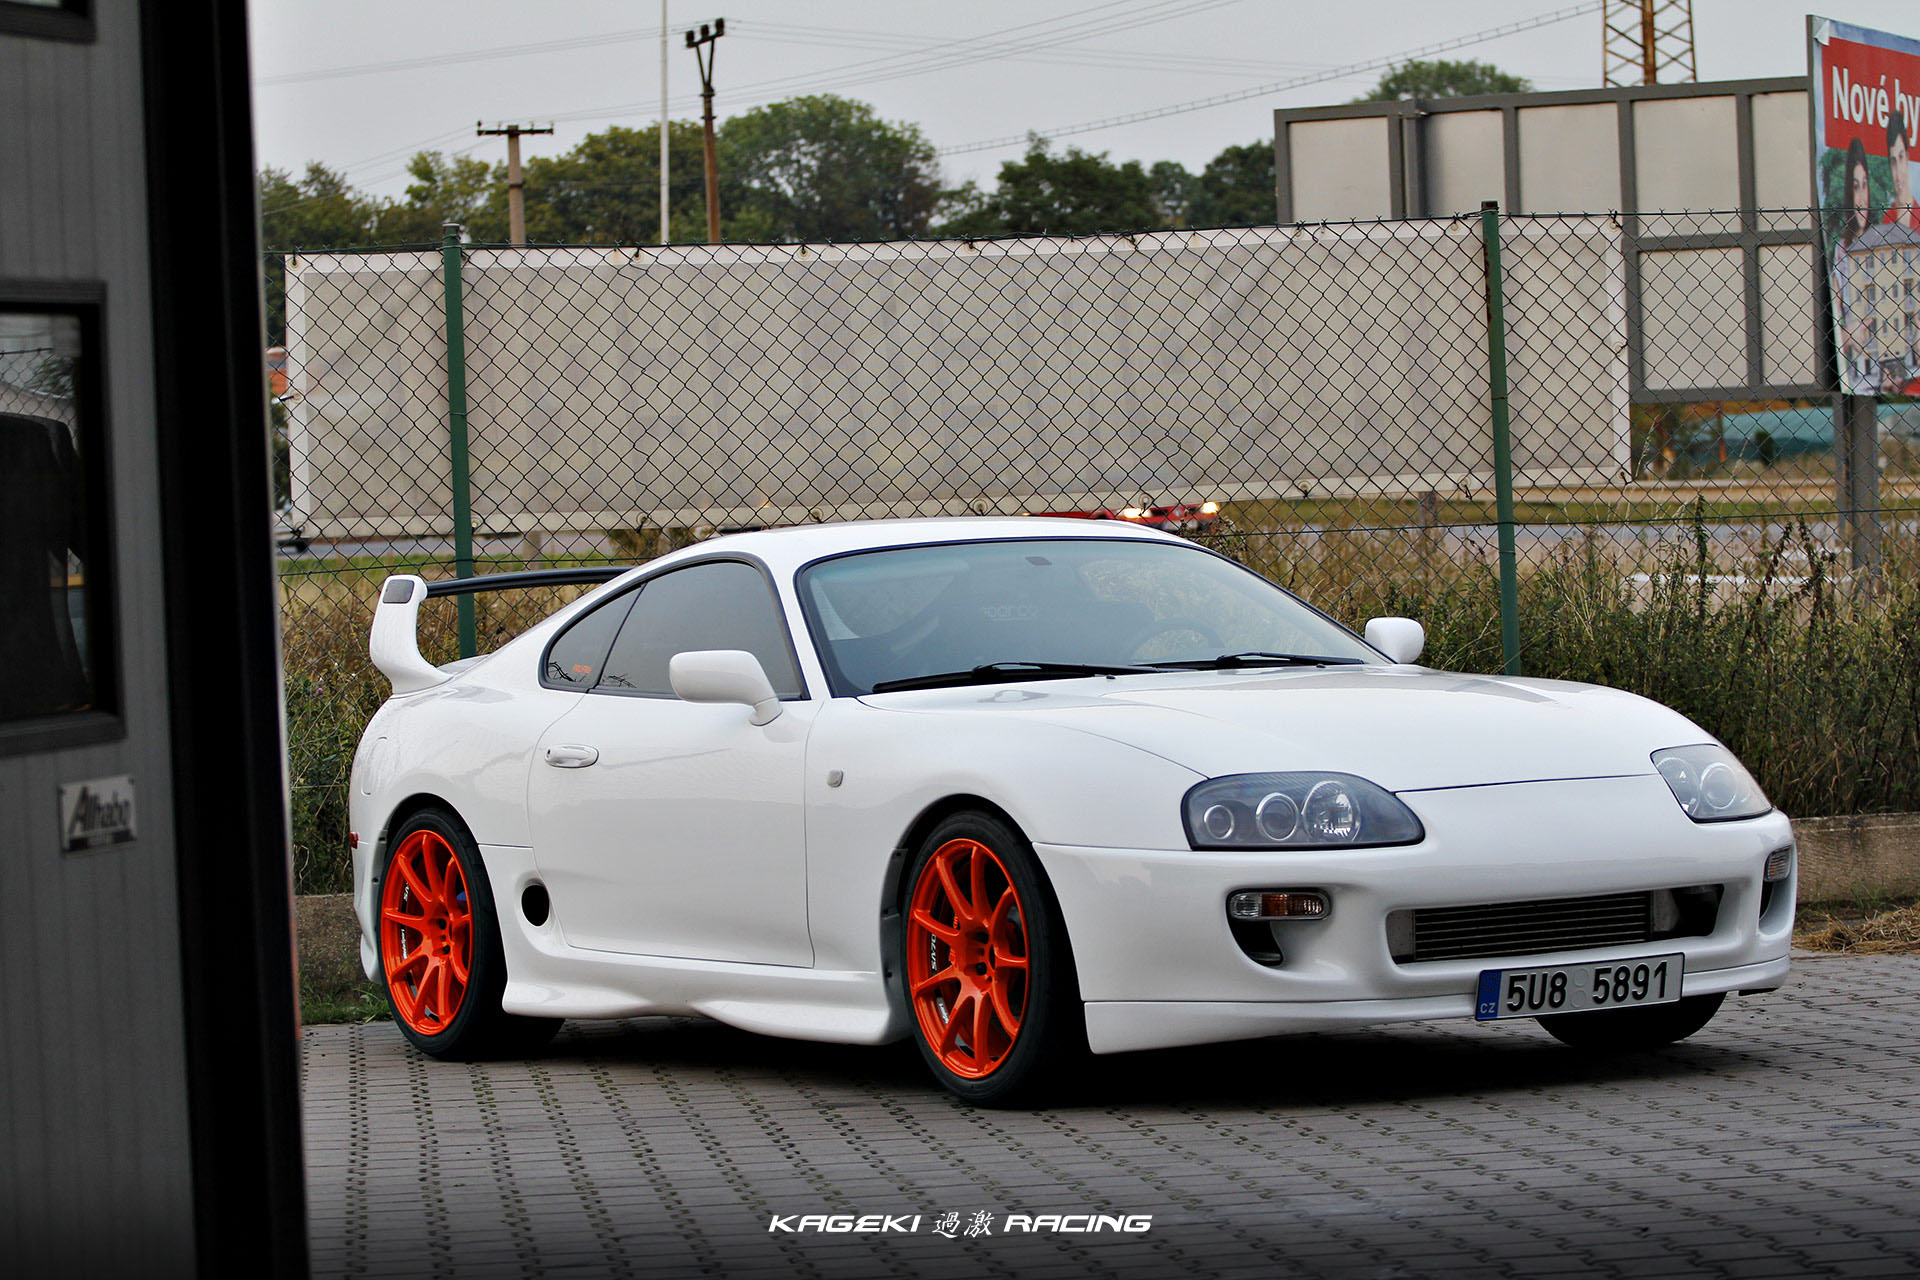 Lhd Toyota Supra Jdm Kageki Racing Expensive Toys For